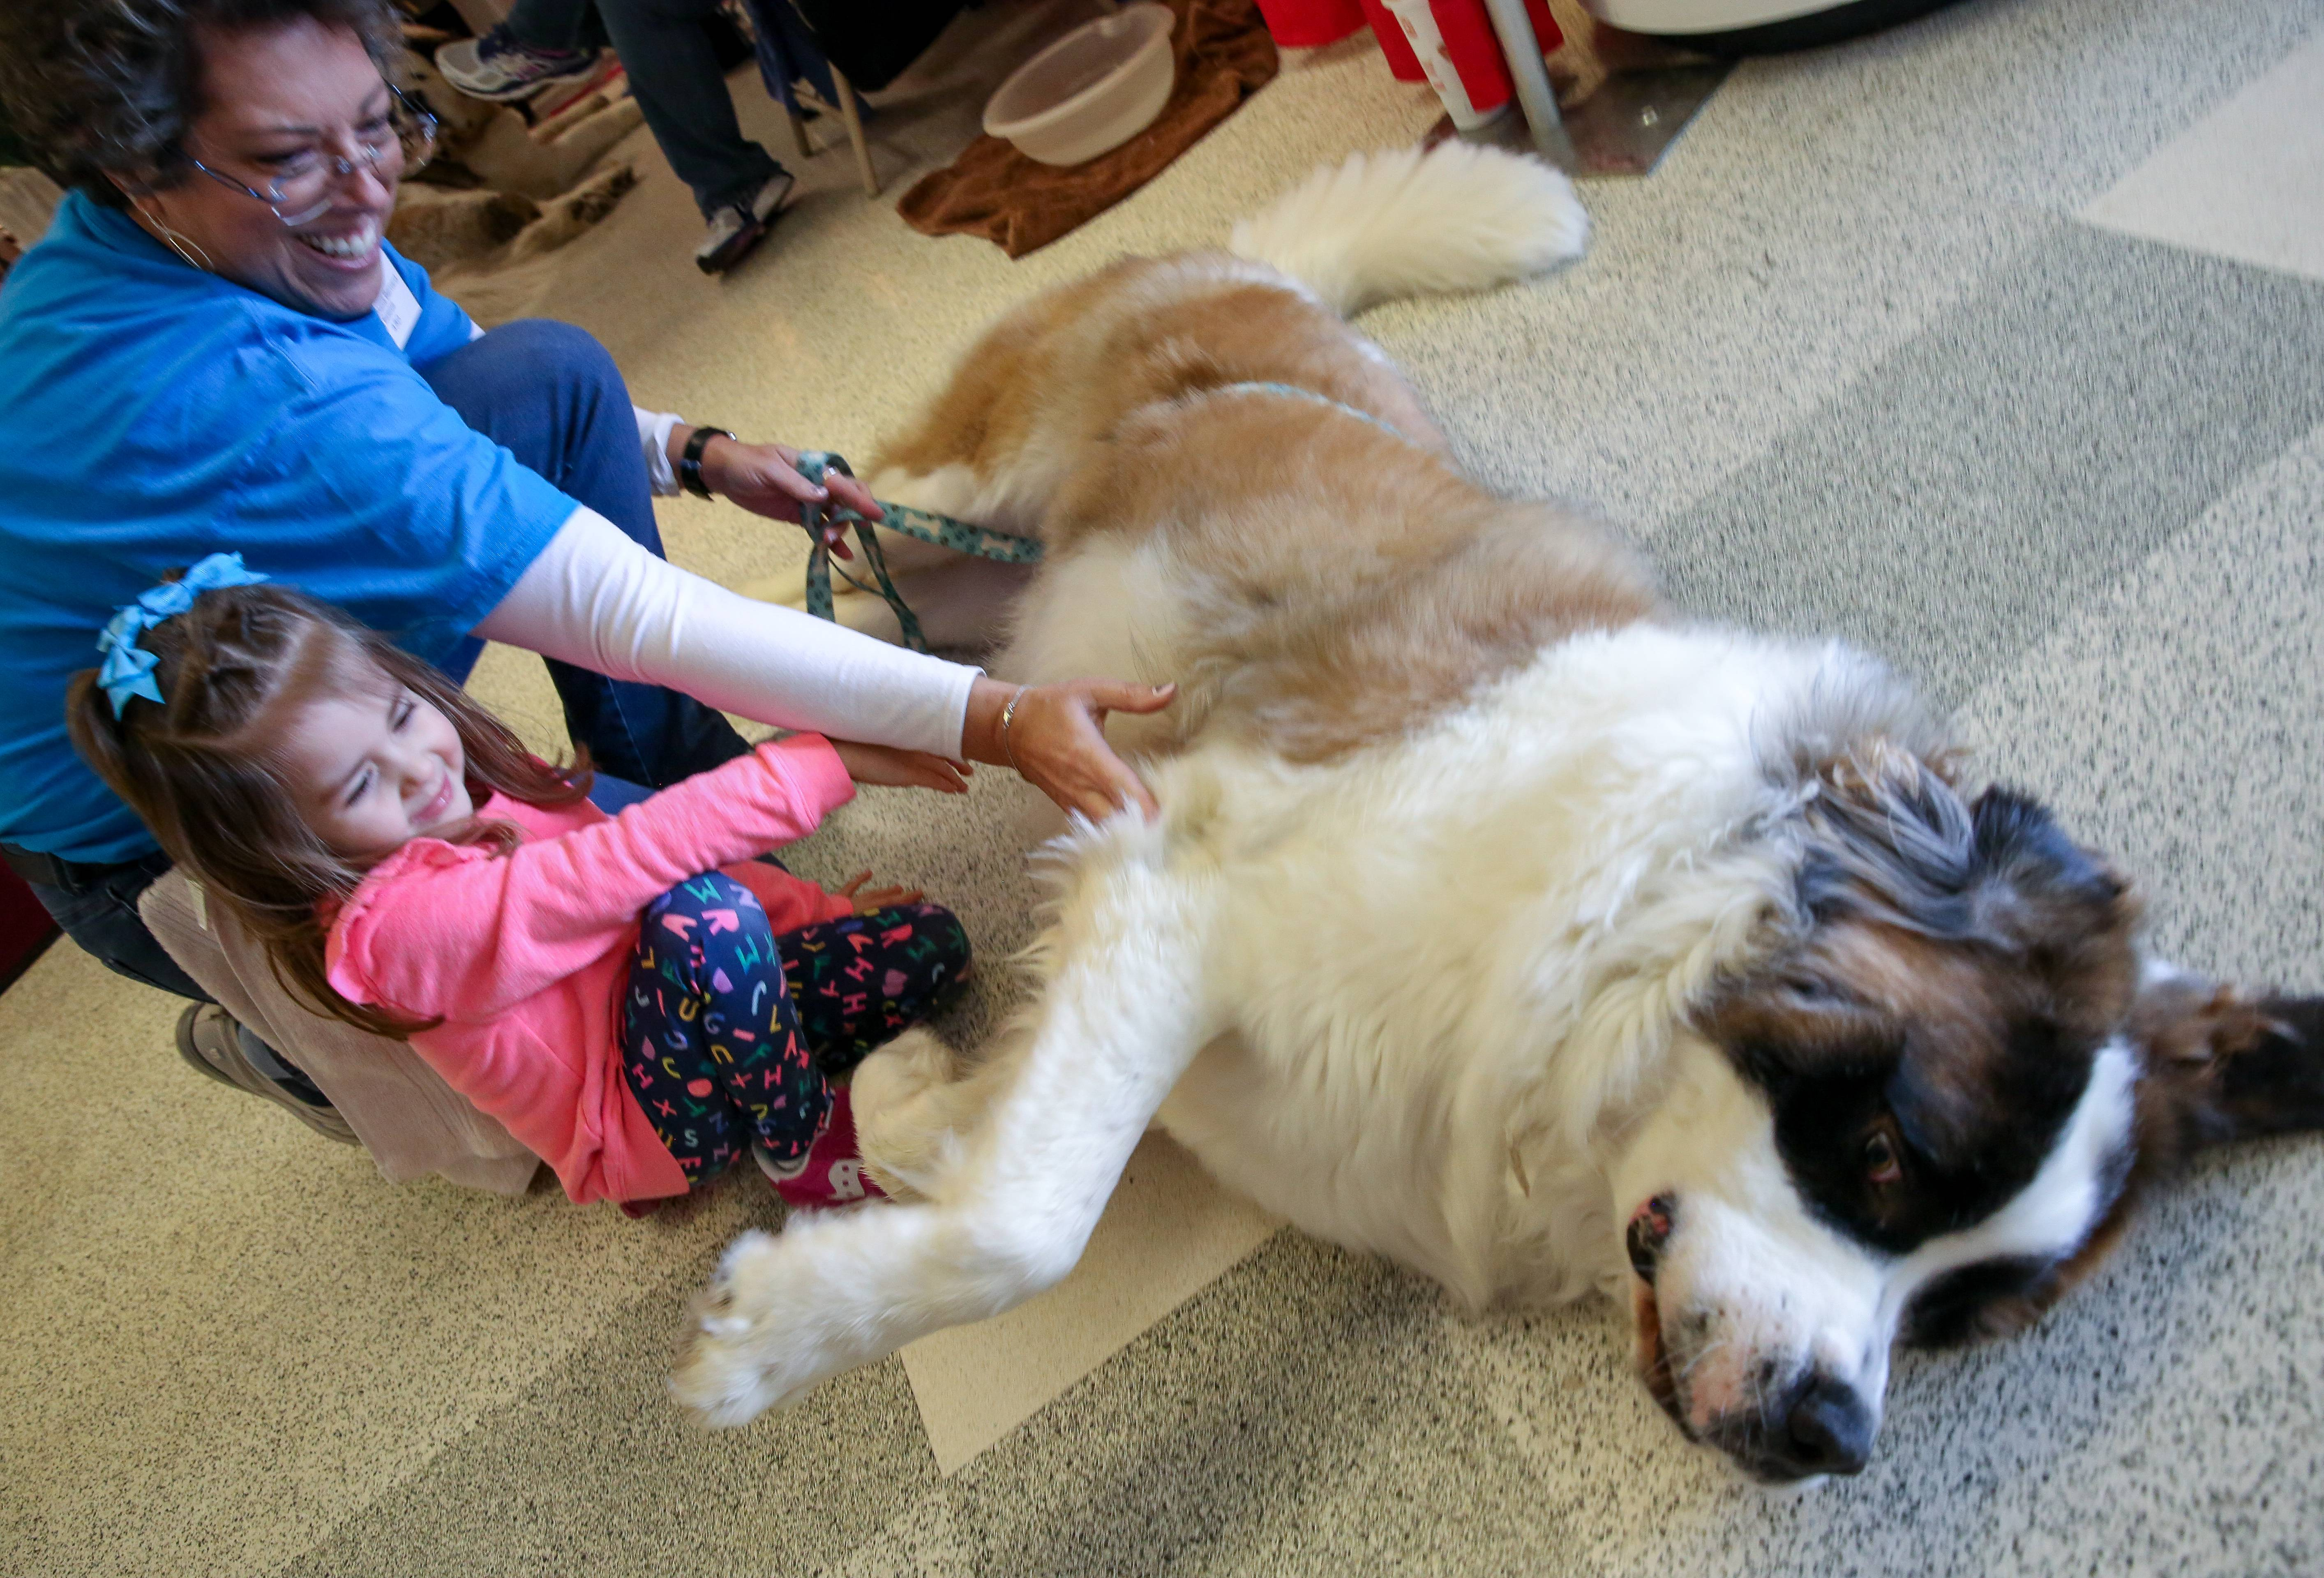 Lorrie Rockey, left, with Illinois Saint Bernard Rescue, shows Meleah Oliver, 3, of Addison, Walter, a 14-month-old Saint Bernard at Chicagoland Family Pet Expo at Arlington Park in Arlington Heights on Friday.